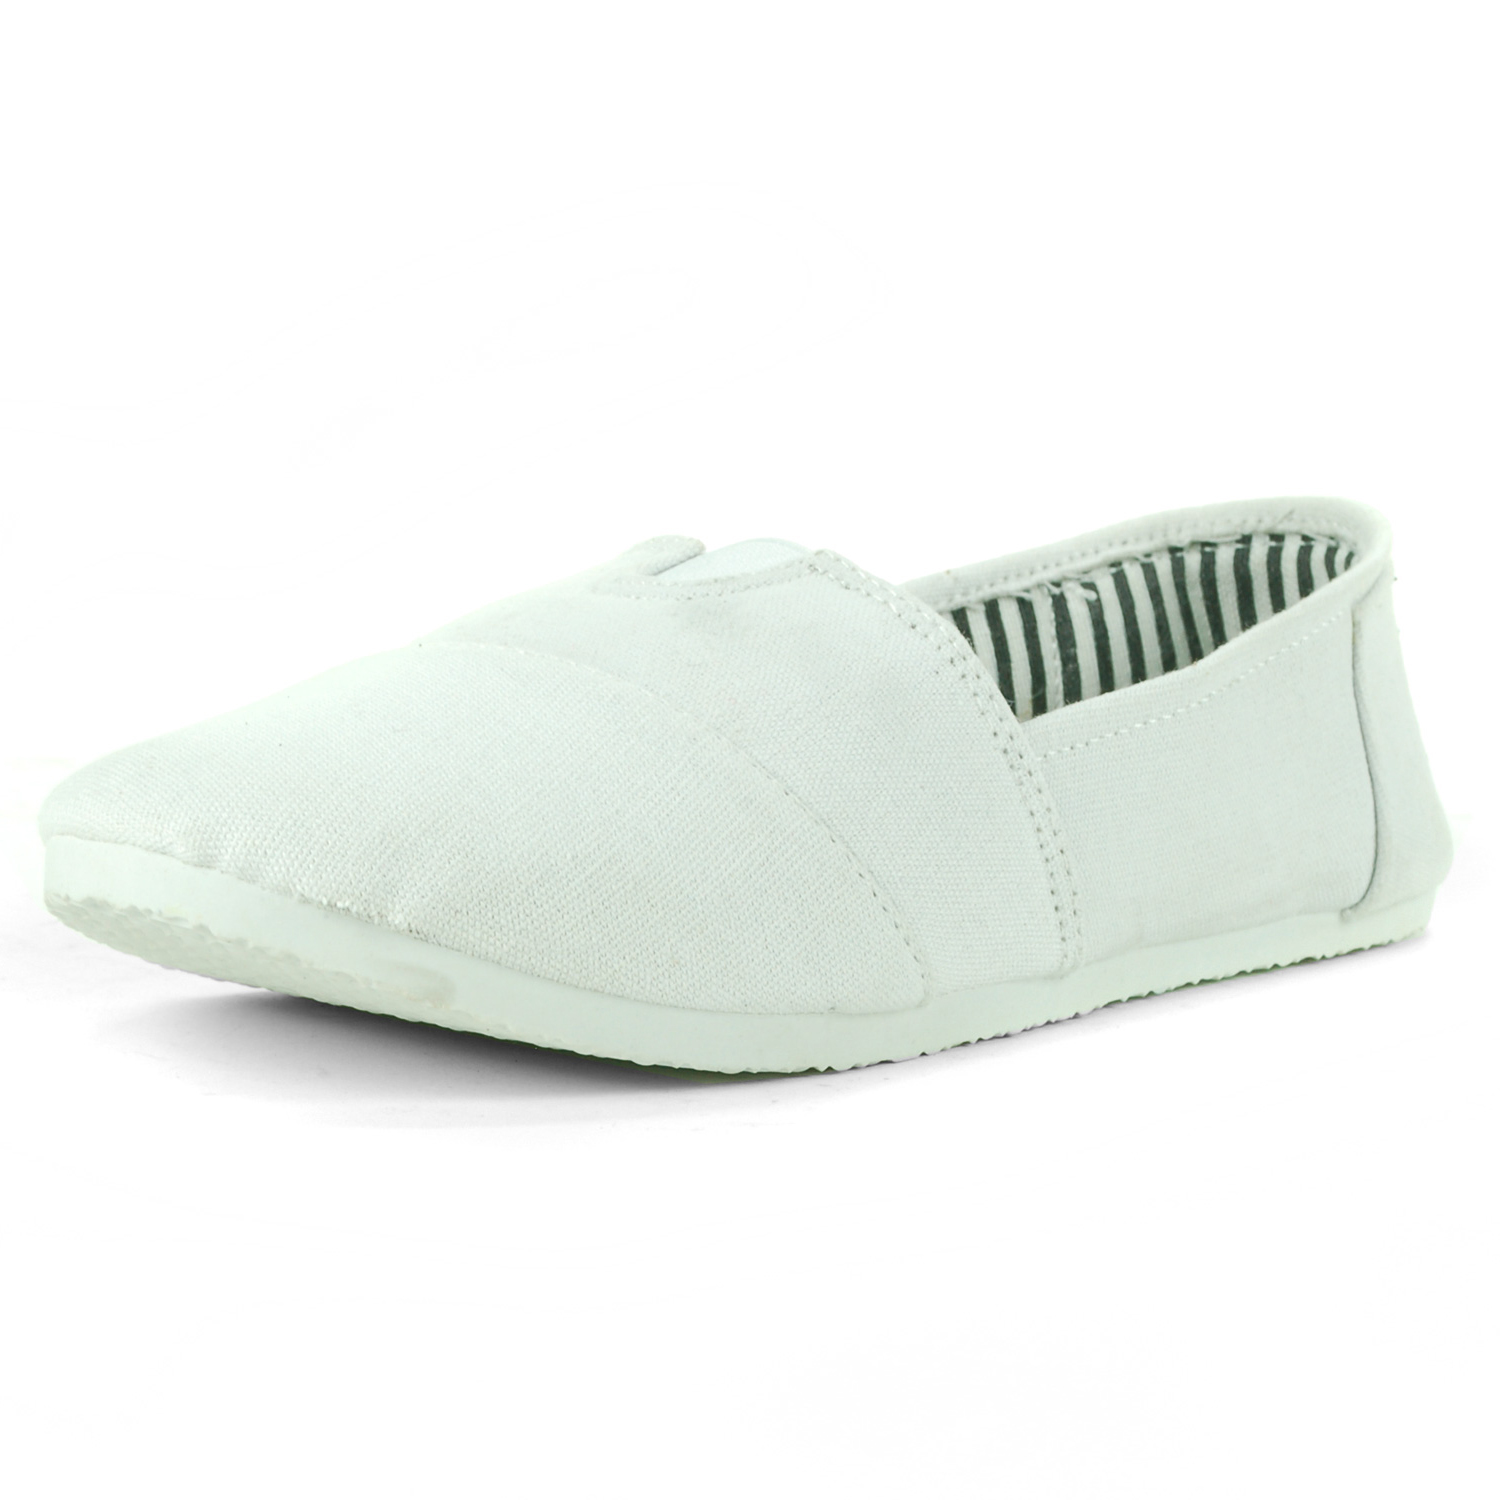 womens canvas ballet flats slip on espadrille loafer shoes